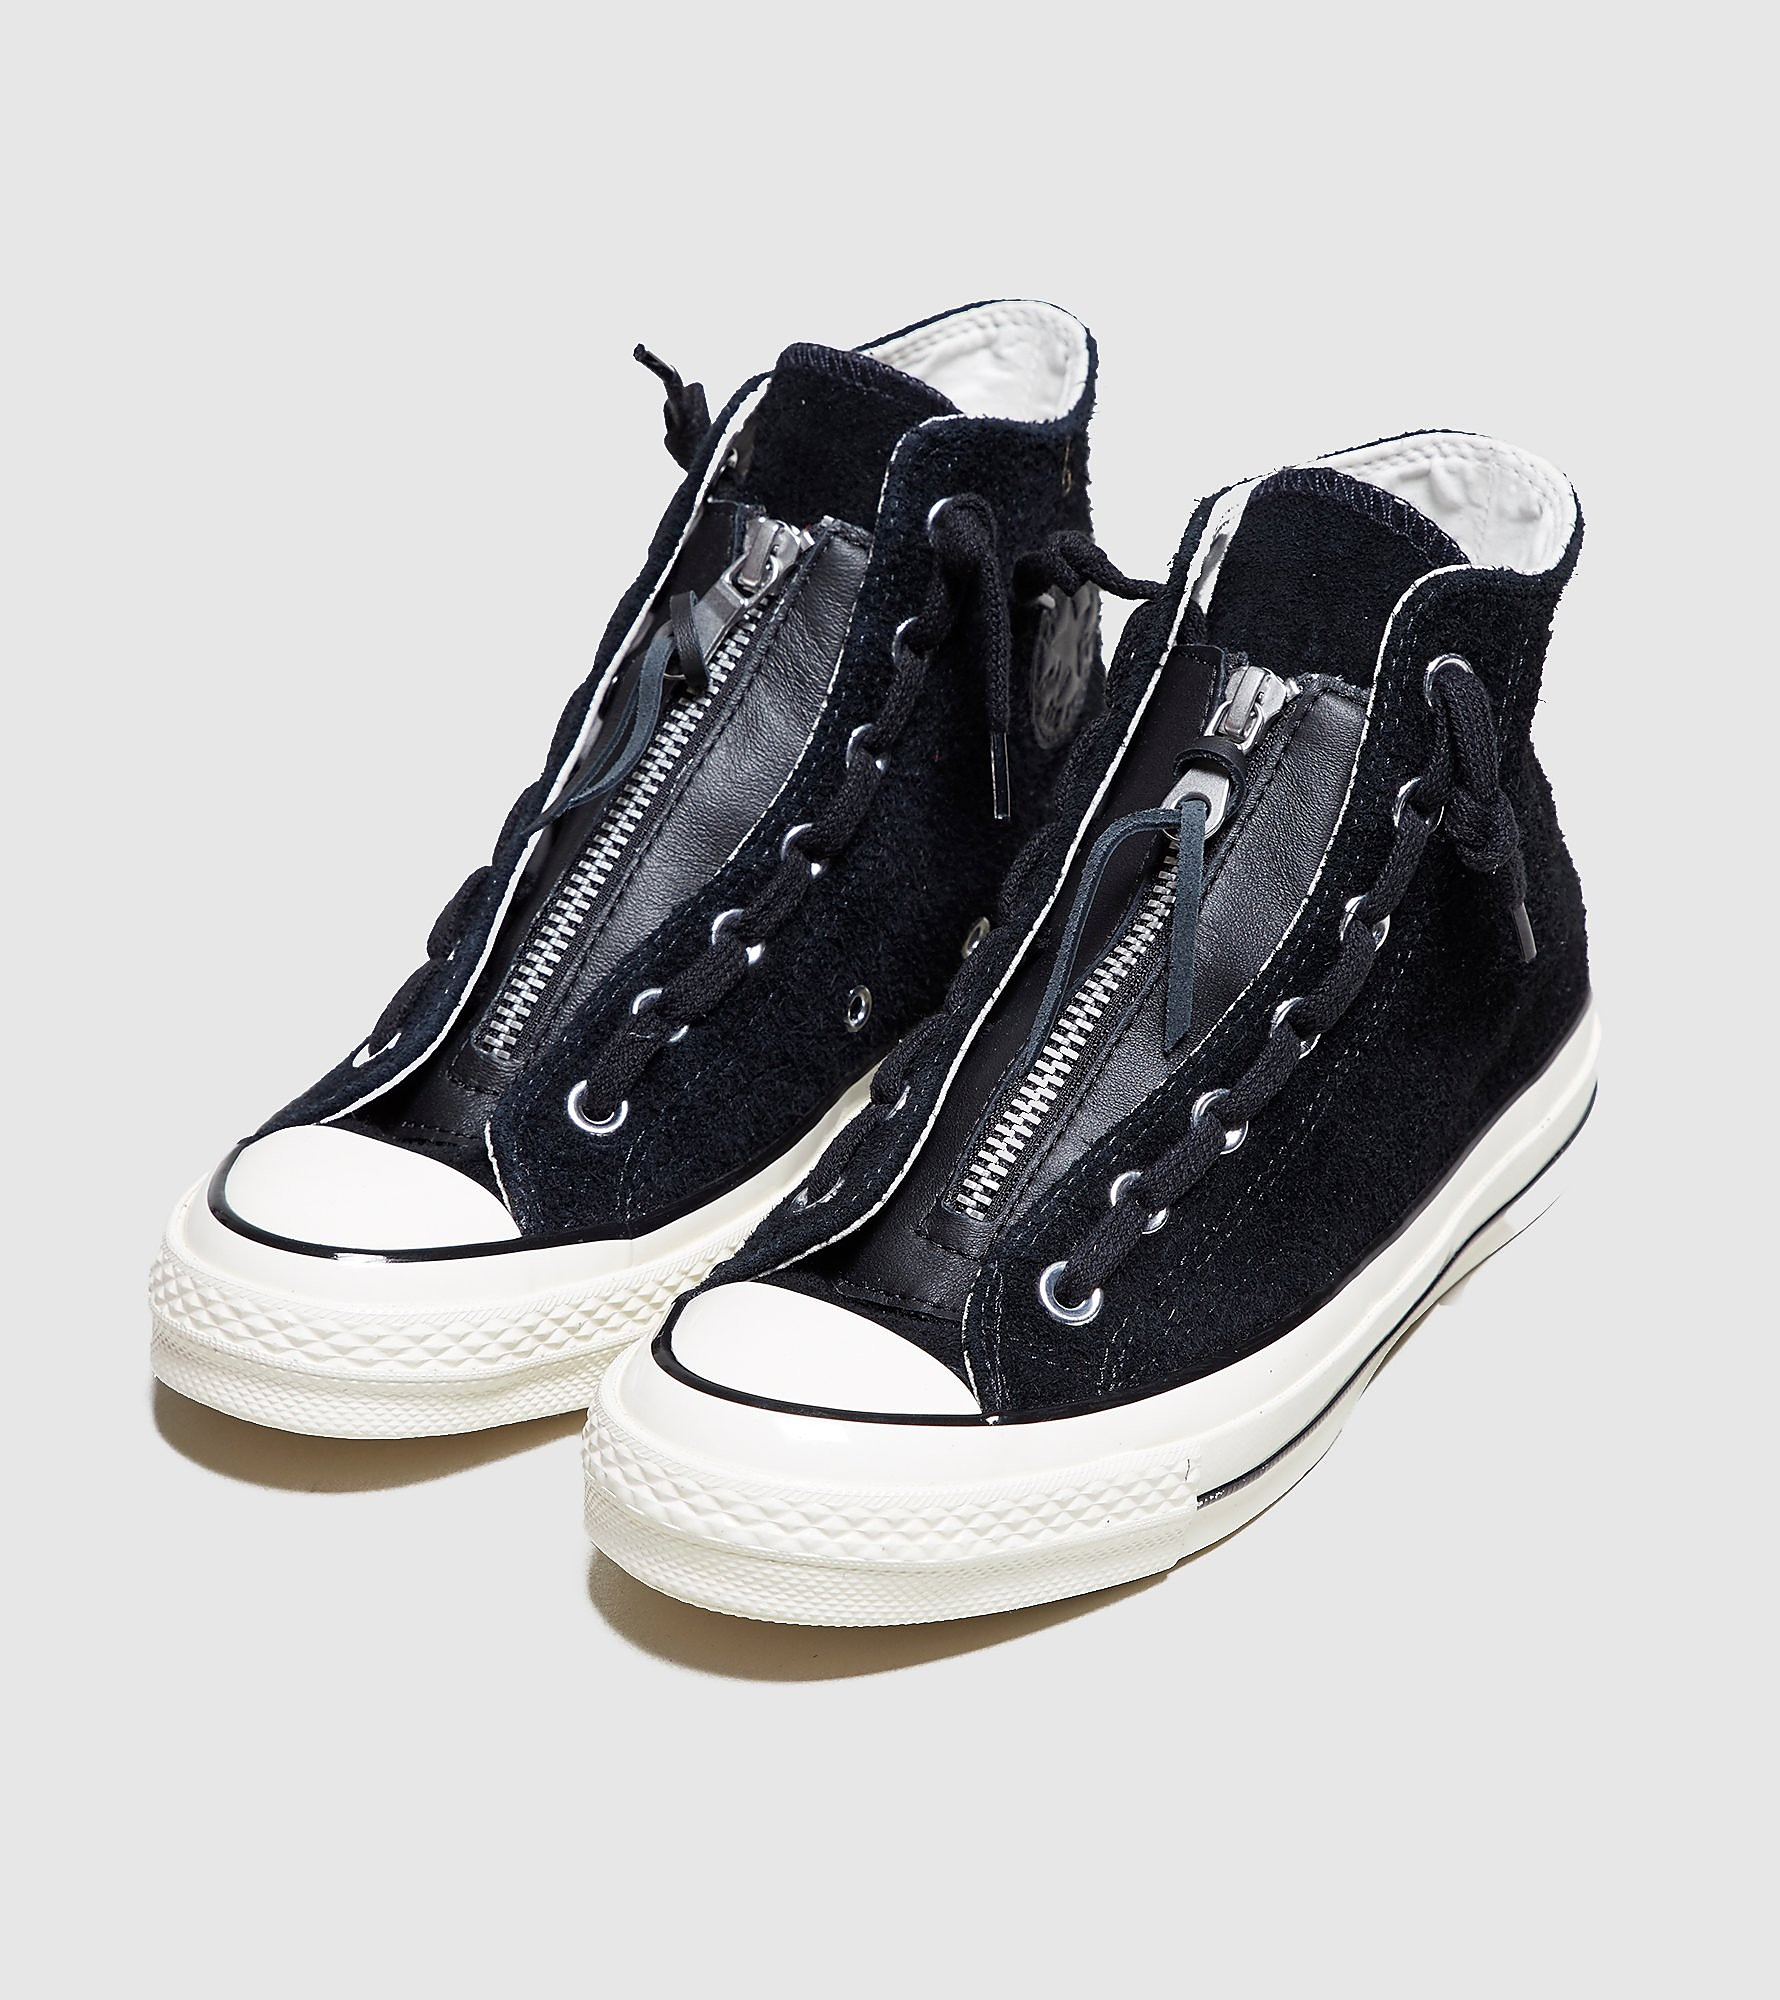 Converse All Star 70's Hi Women's